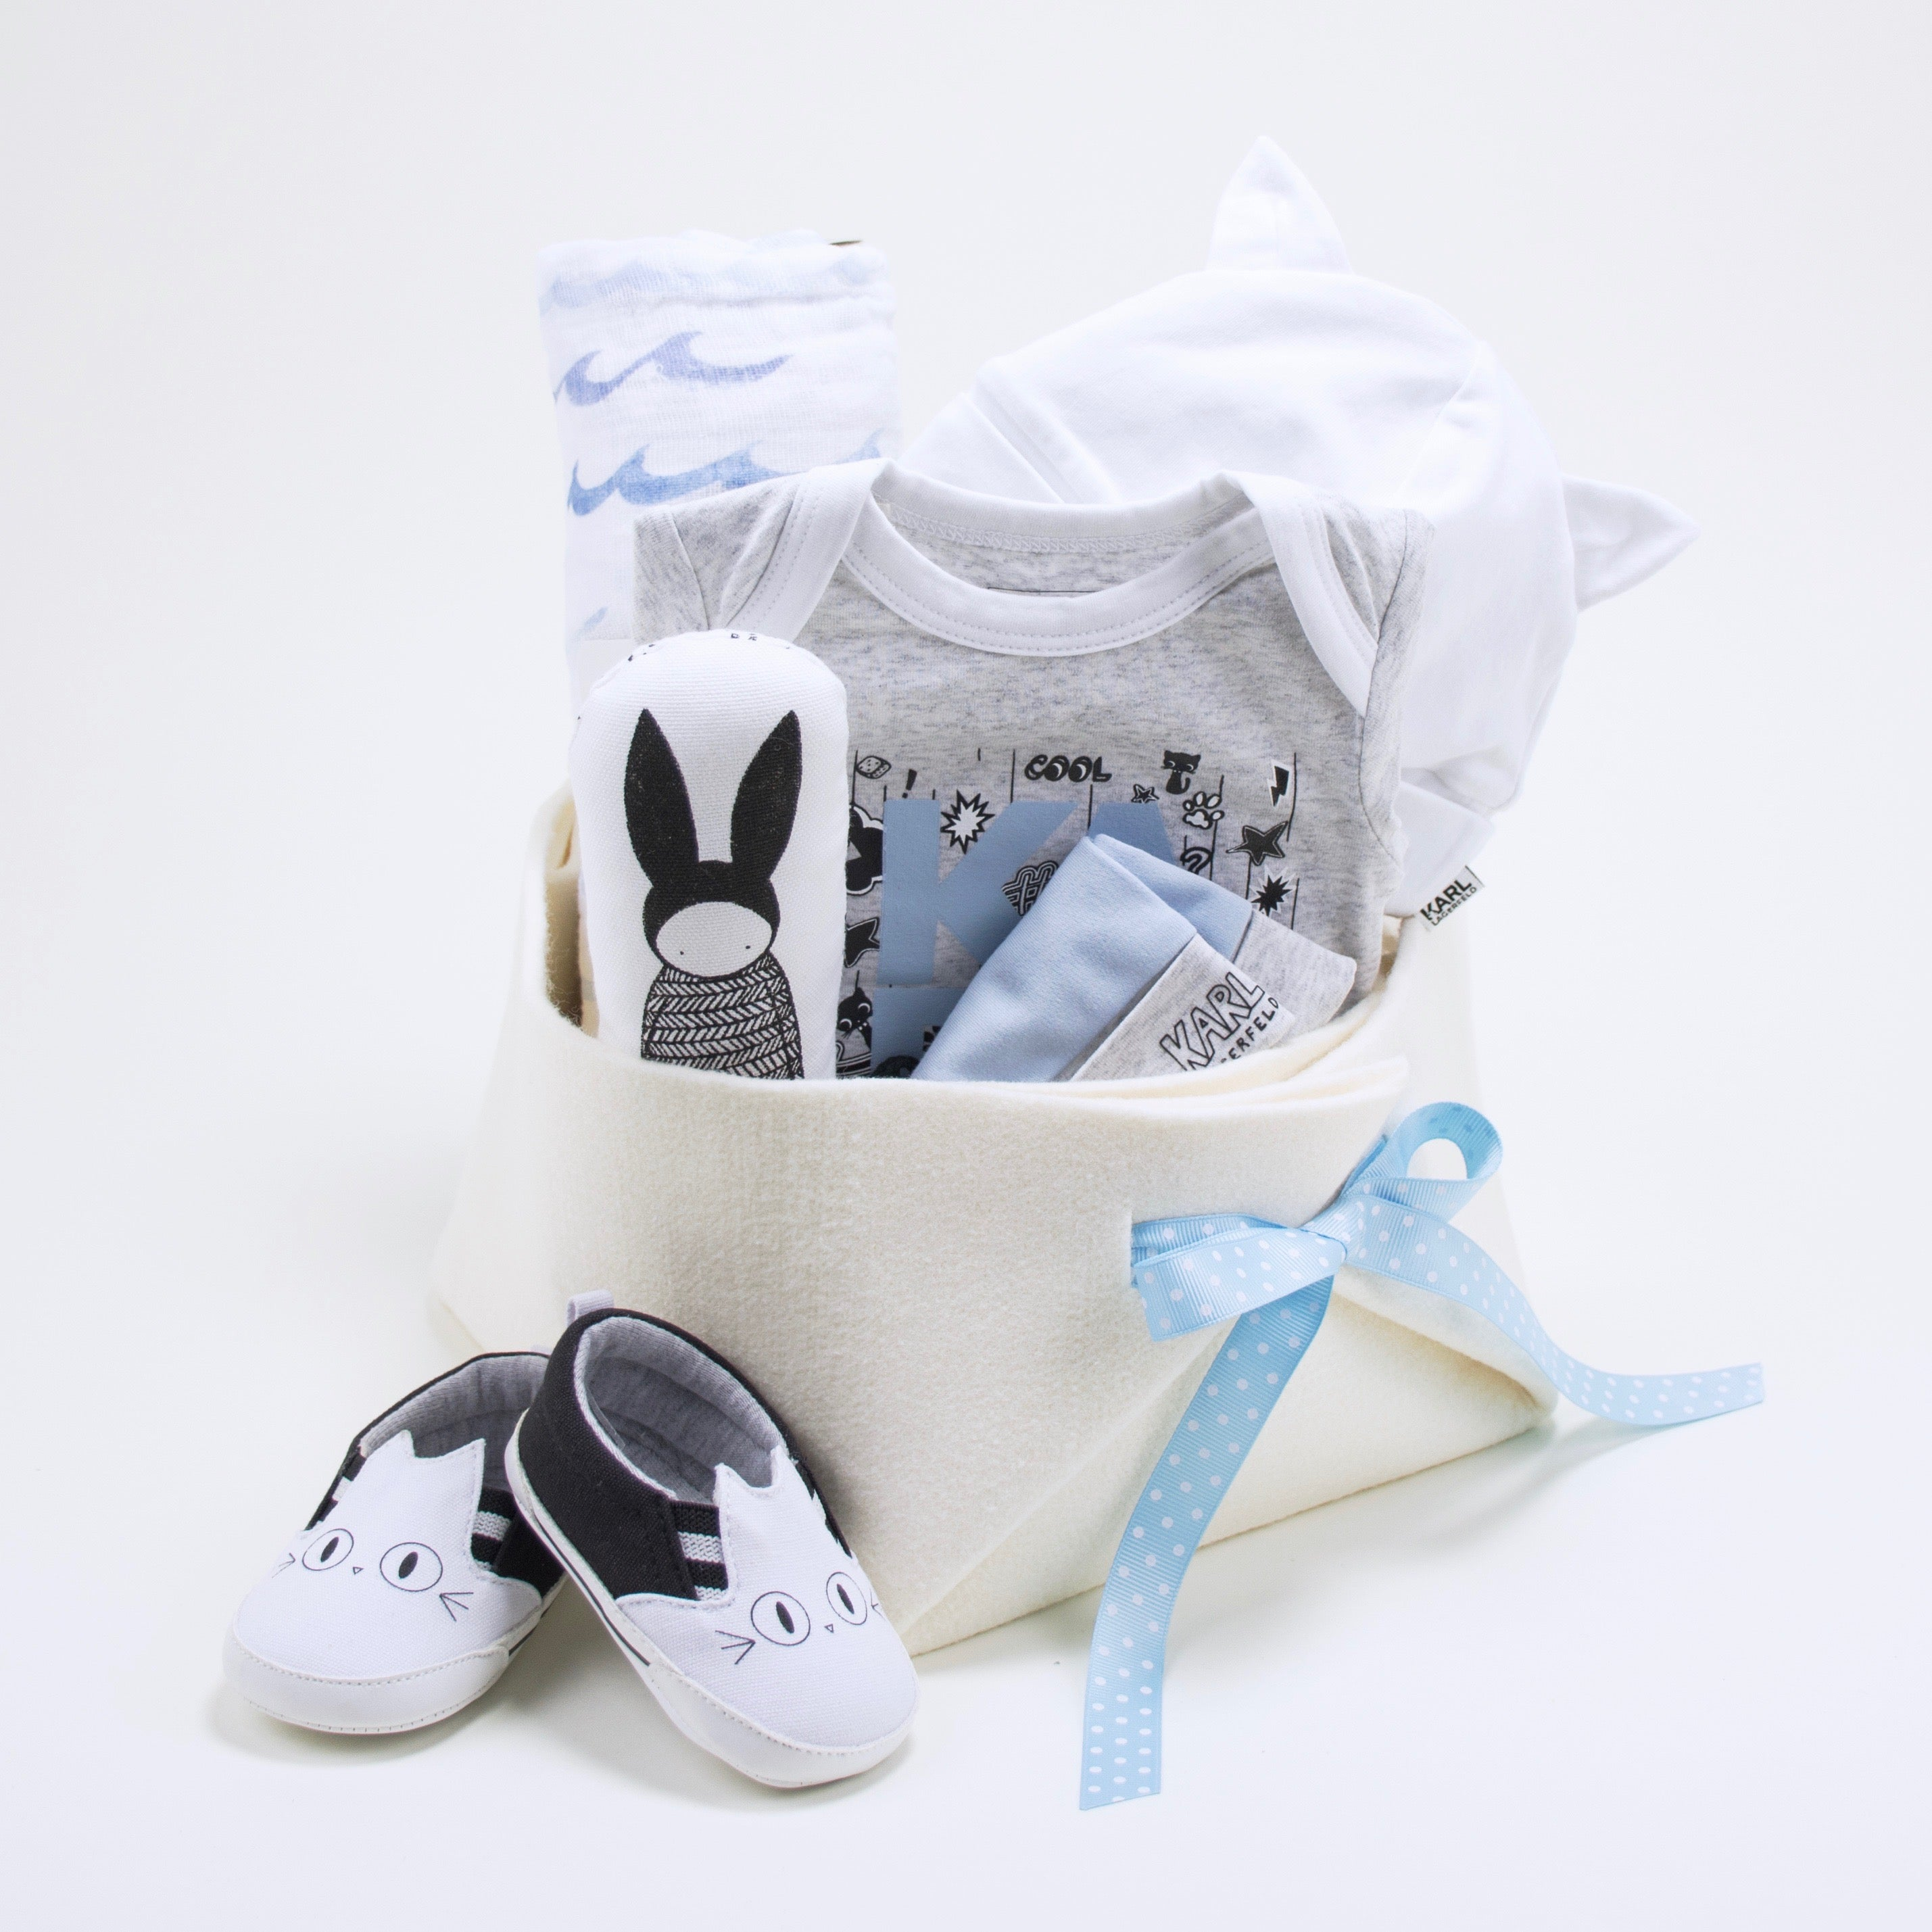 Karl Lagerfeld Luxury Baby Gift at Bonjour Baby Baskets